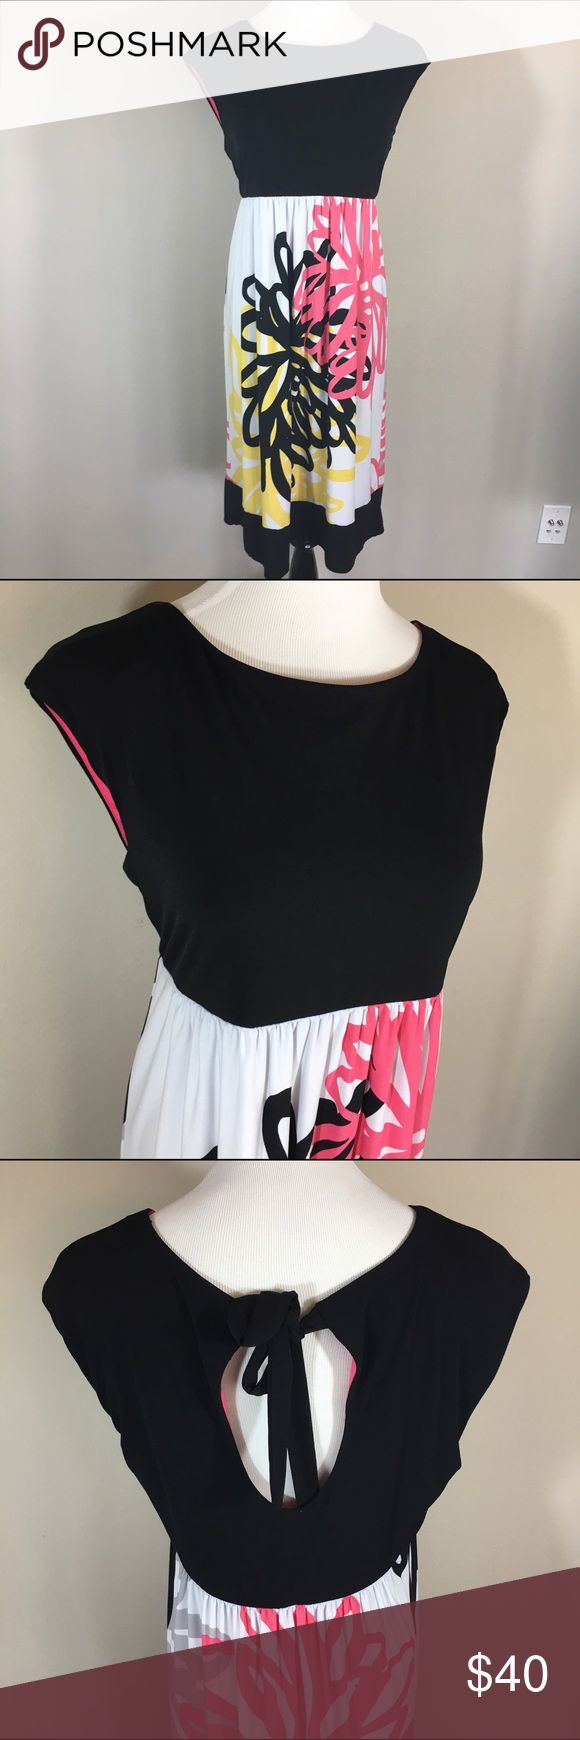 Black Friday Sale! Cap Sleeve Dress Cap sleeve dress with tie Keyhole detailing on the back. Has good stretch and hangs well. London Style Collection Dresses